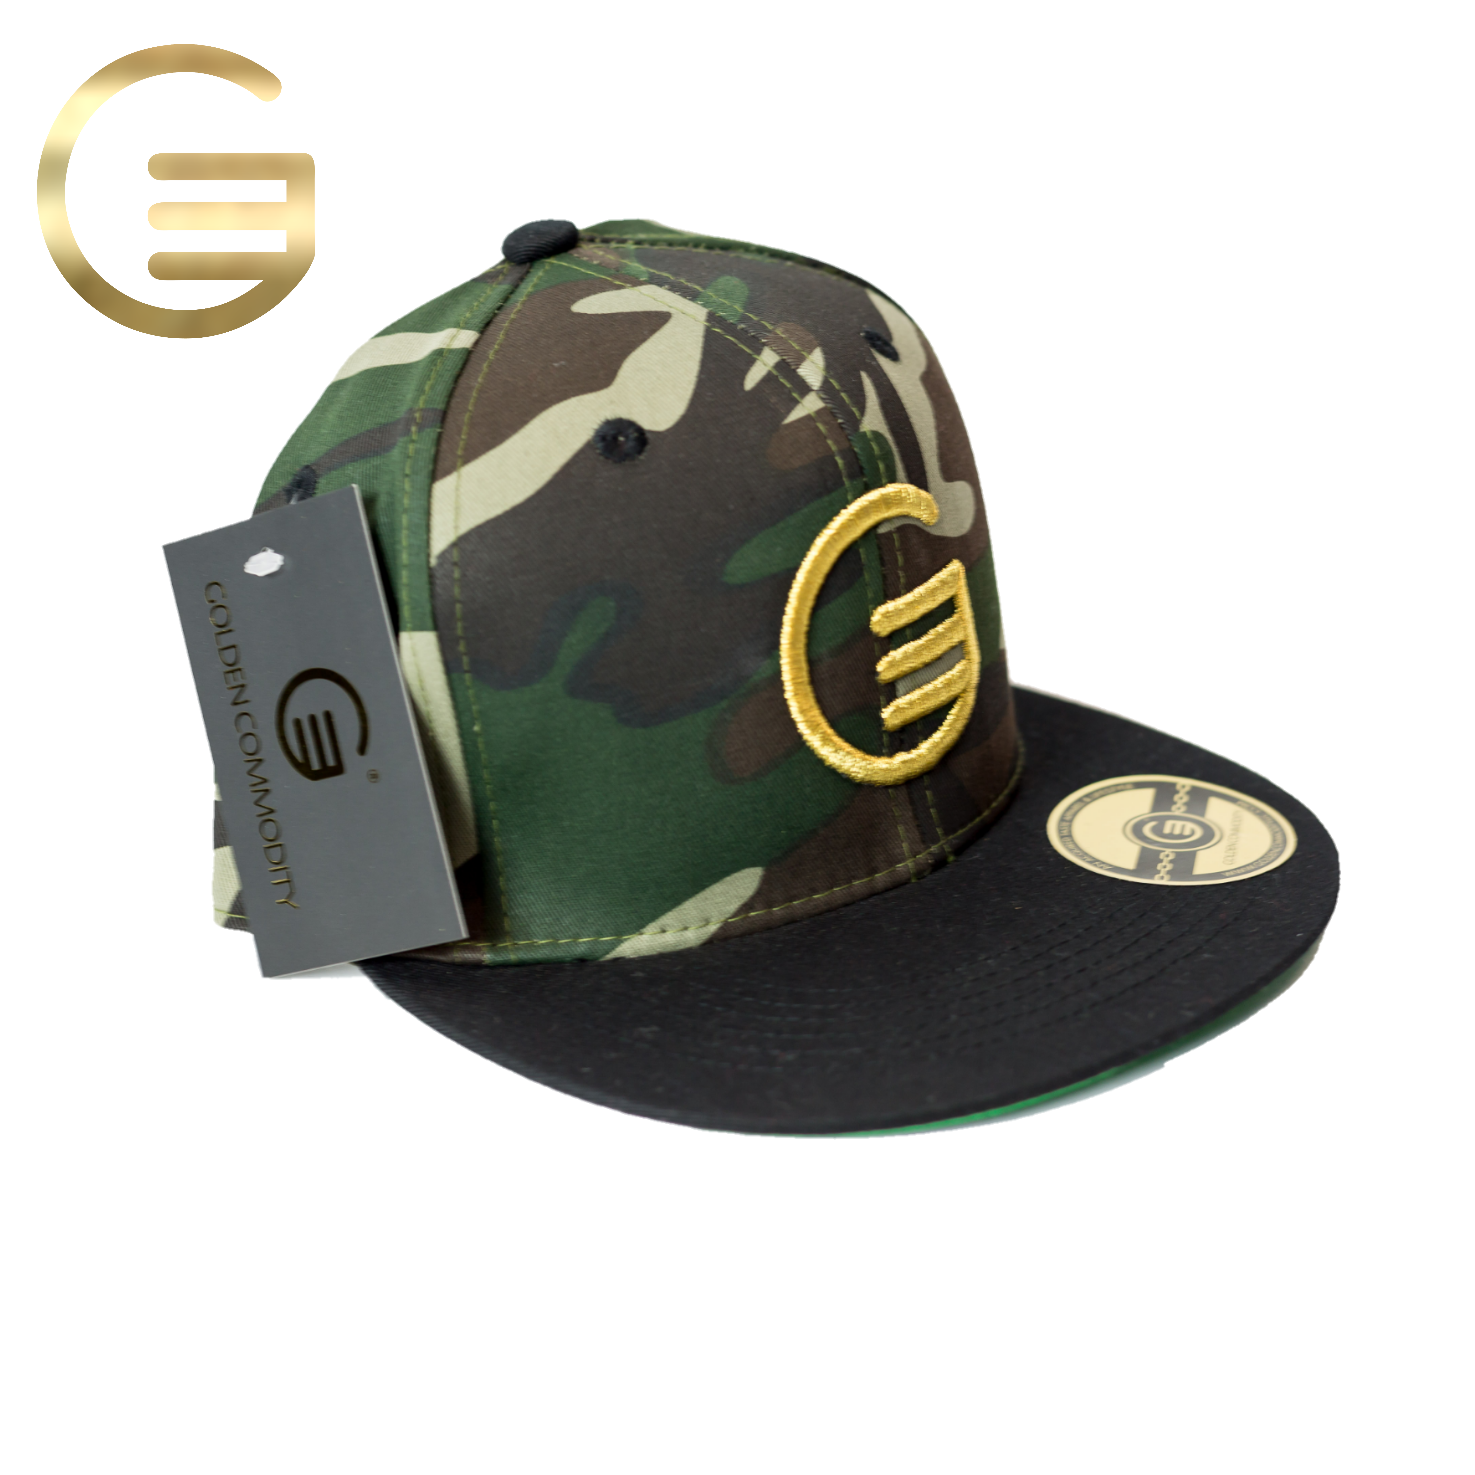 Classic GC Gold On Fatigue Snapback